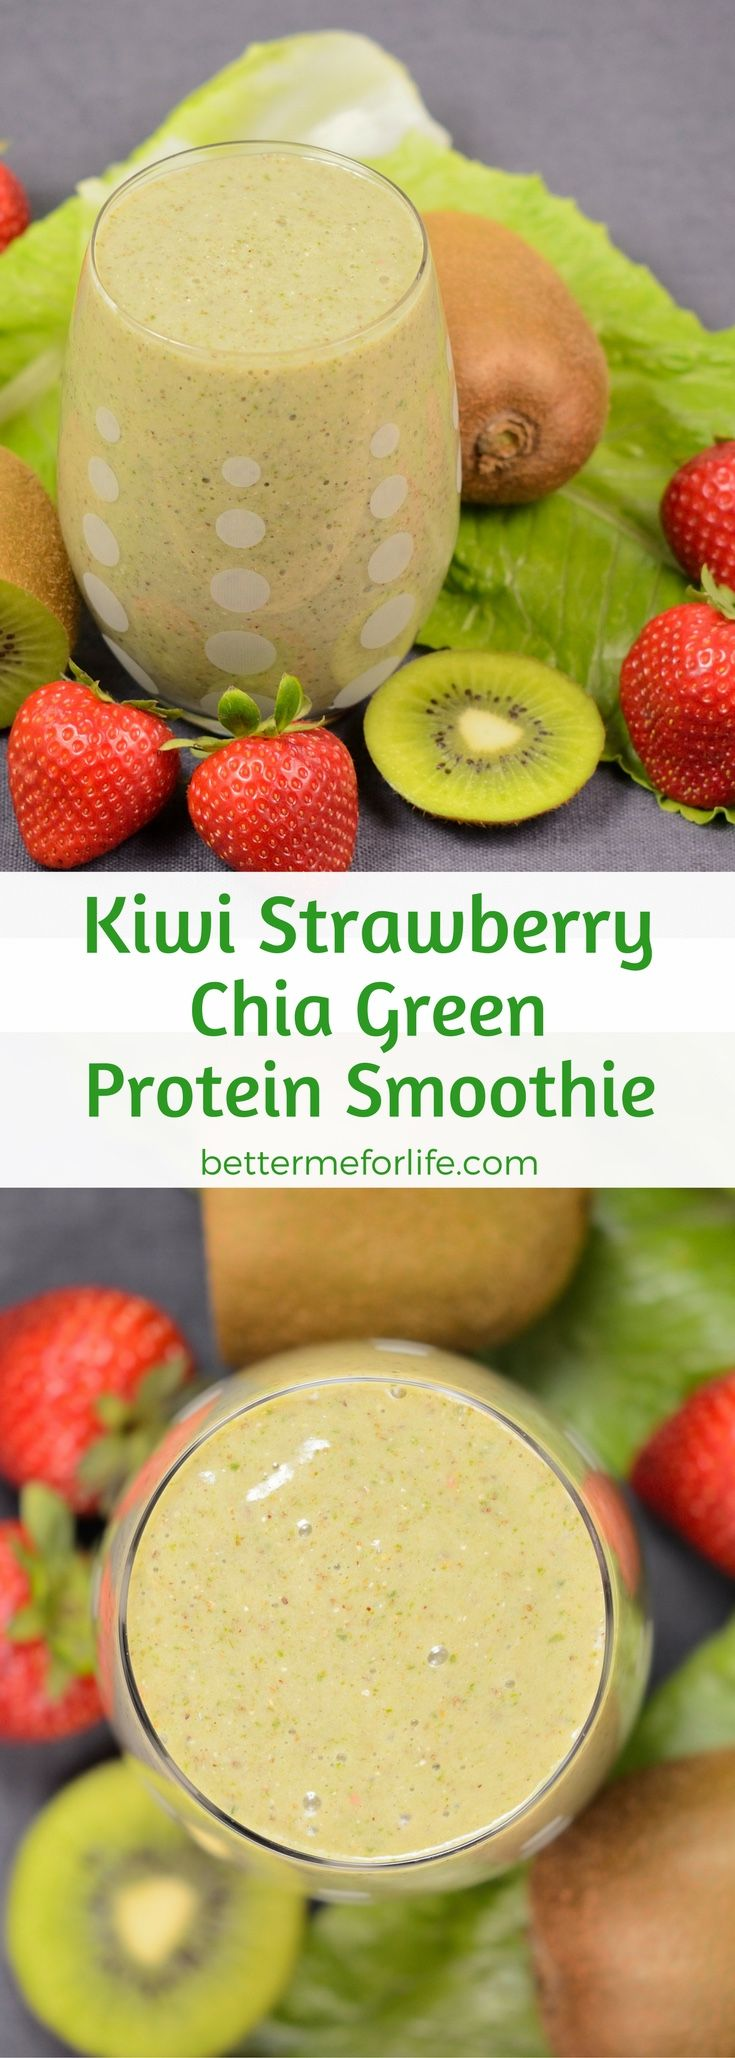 This kiwi strawberry chia green protein smoothie is a light and refreshing weight loss smoothie. It's packed with nutrients and will keep you full for a long time. Recipe at BetterMeforLife.com   green protein smoothie recipes   healthy green protein smoo